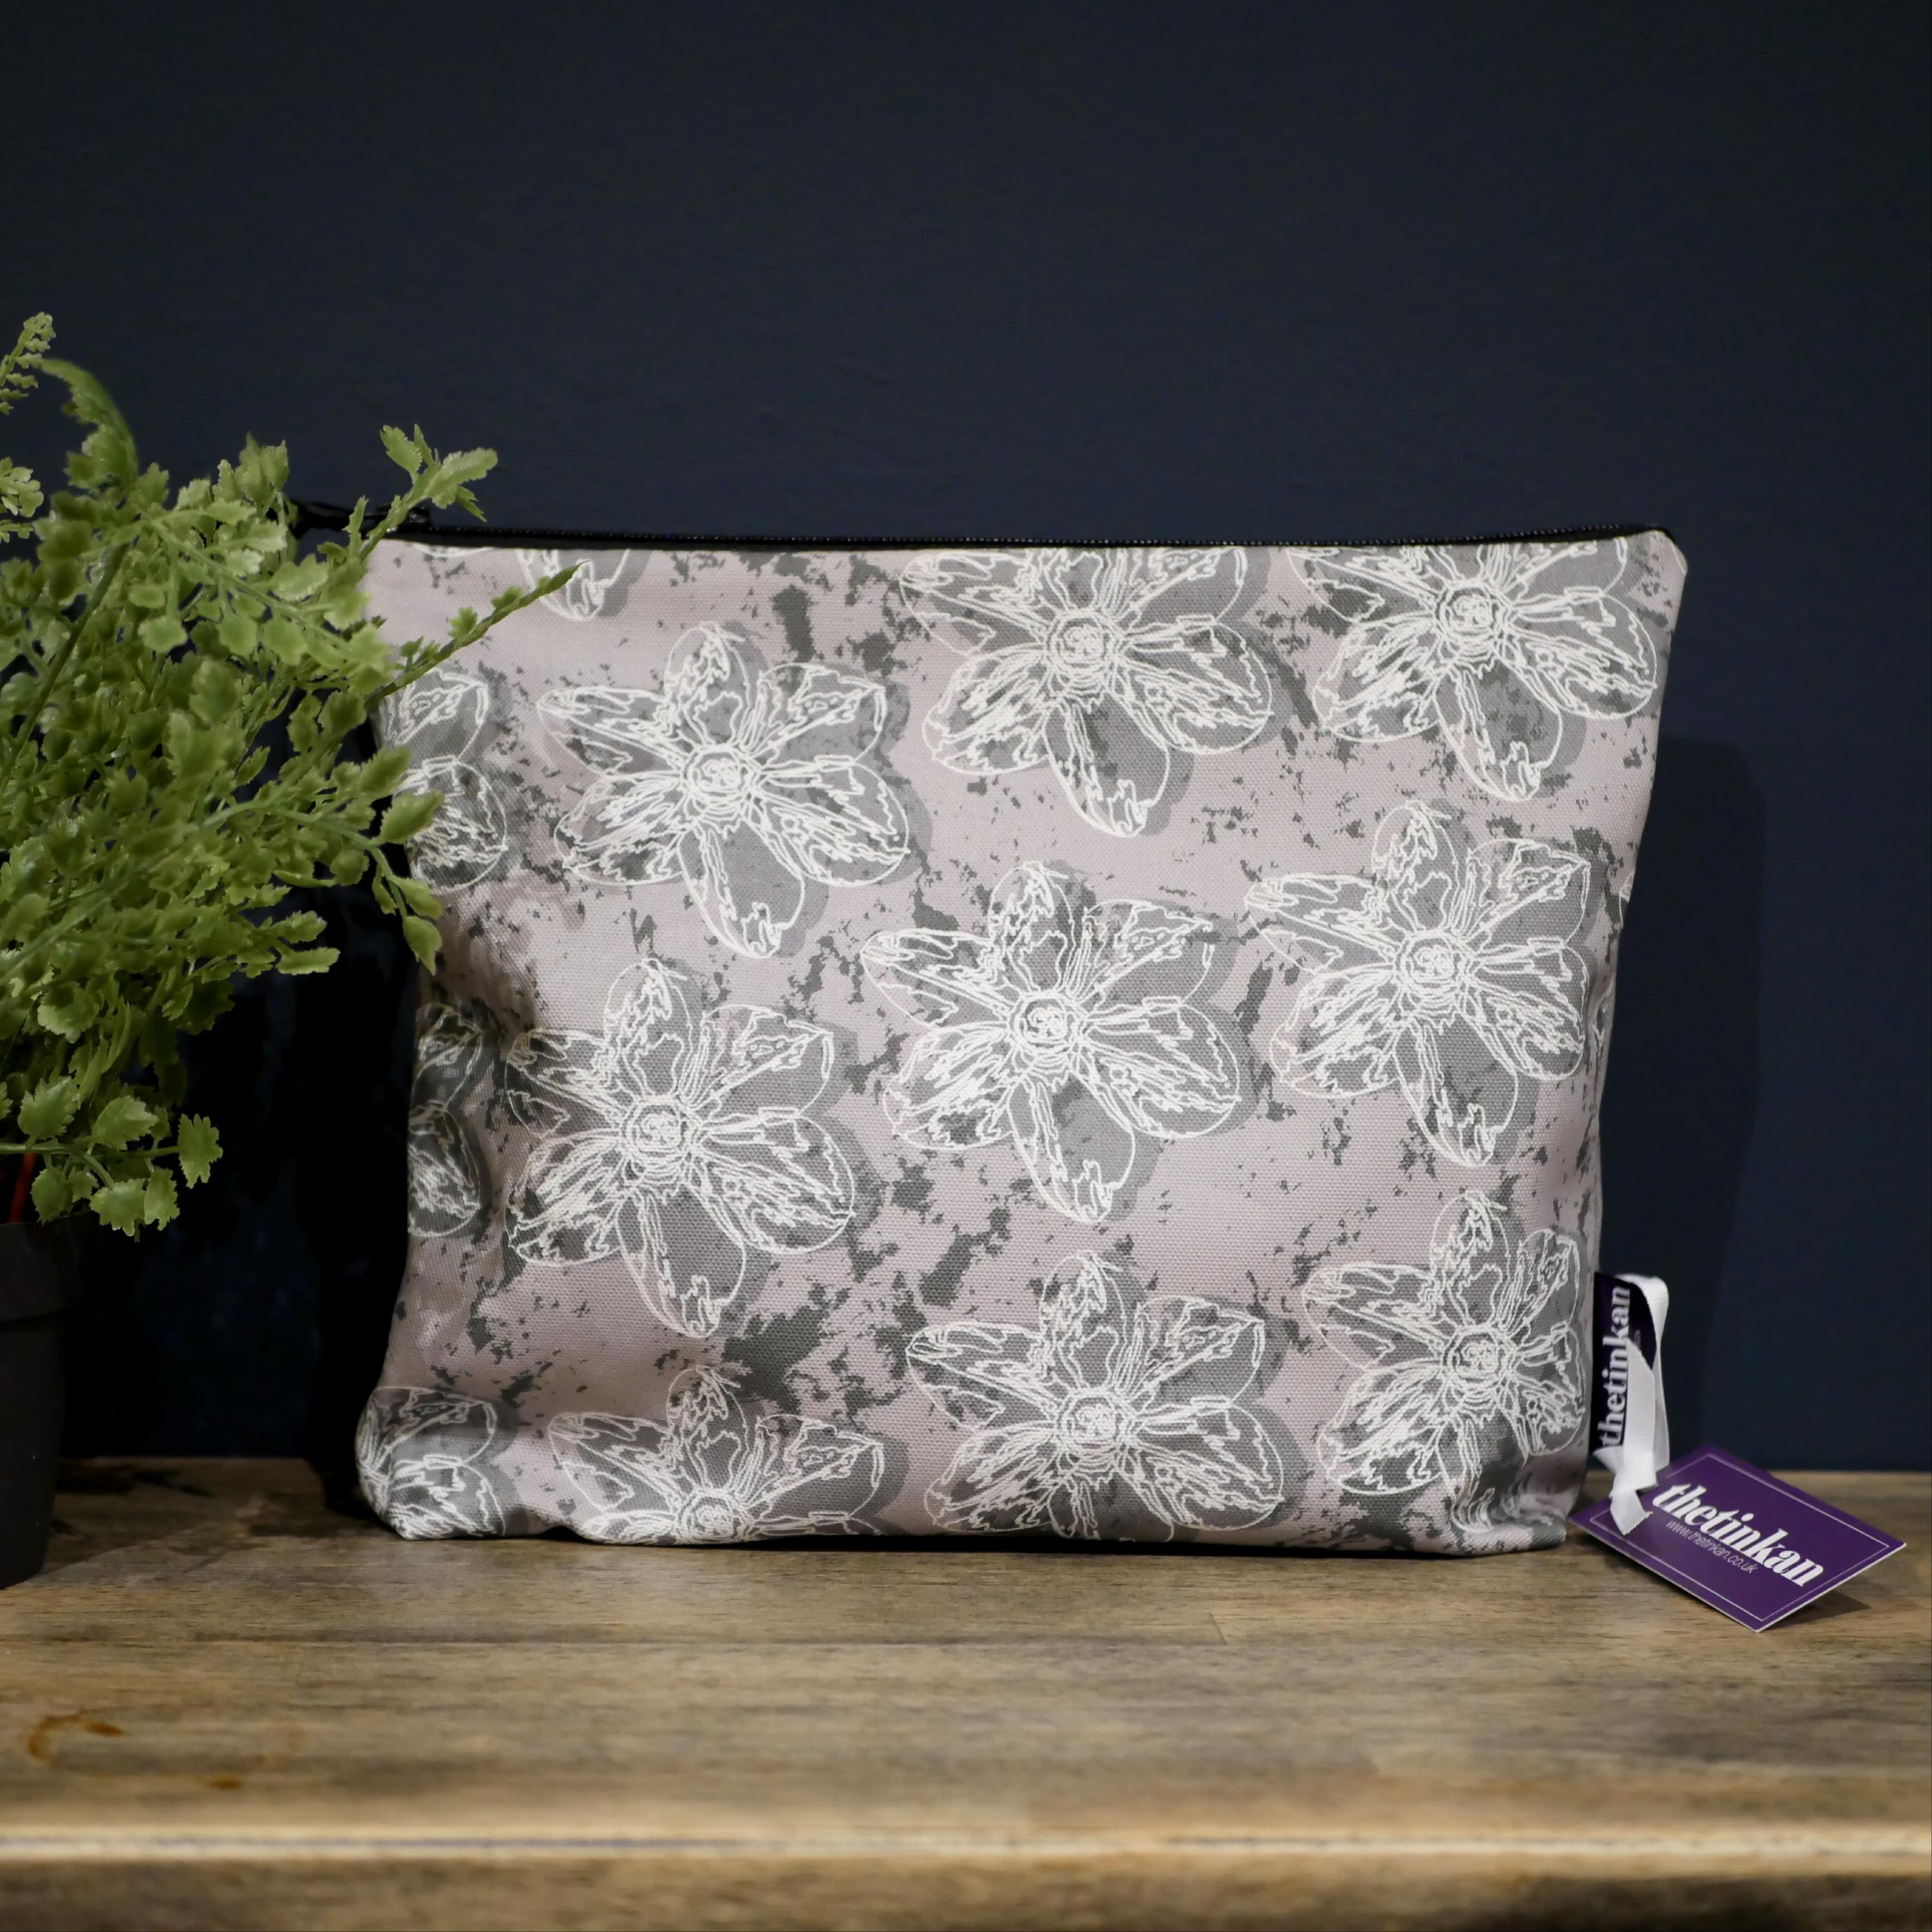 Dark grey flower with a matching coloured reverse, set on an mid grey background with a charcoal grey colour splash. Designed by thetinkan, the flower splash travel beauty washbag featuring the white traced outline of a?narcissus flower is made from panama cotton with black waterproof lining and matching black sturdy zip. Generously sized for all your travel or home needs.? VIEW PRODUCT >>